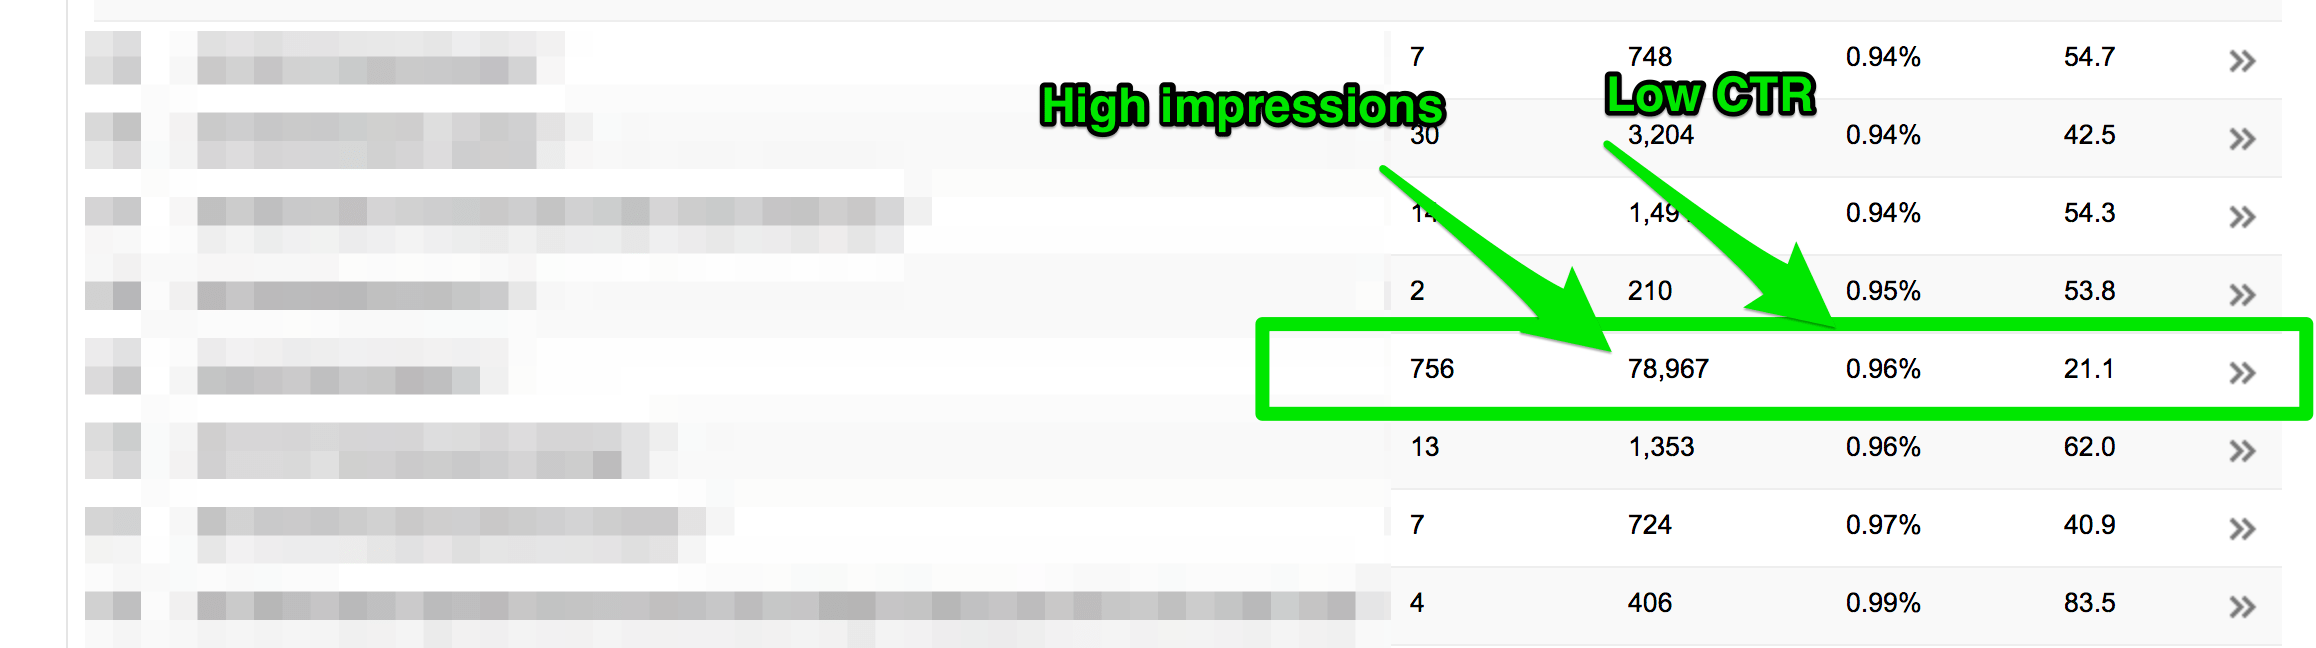 google search console search analytics report ctr